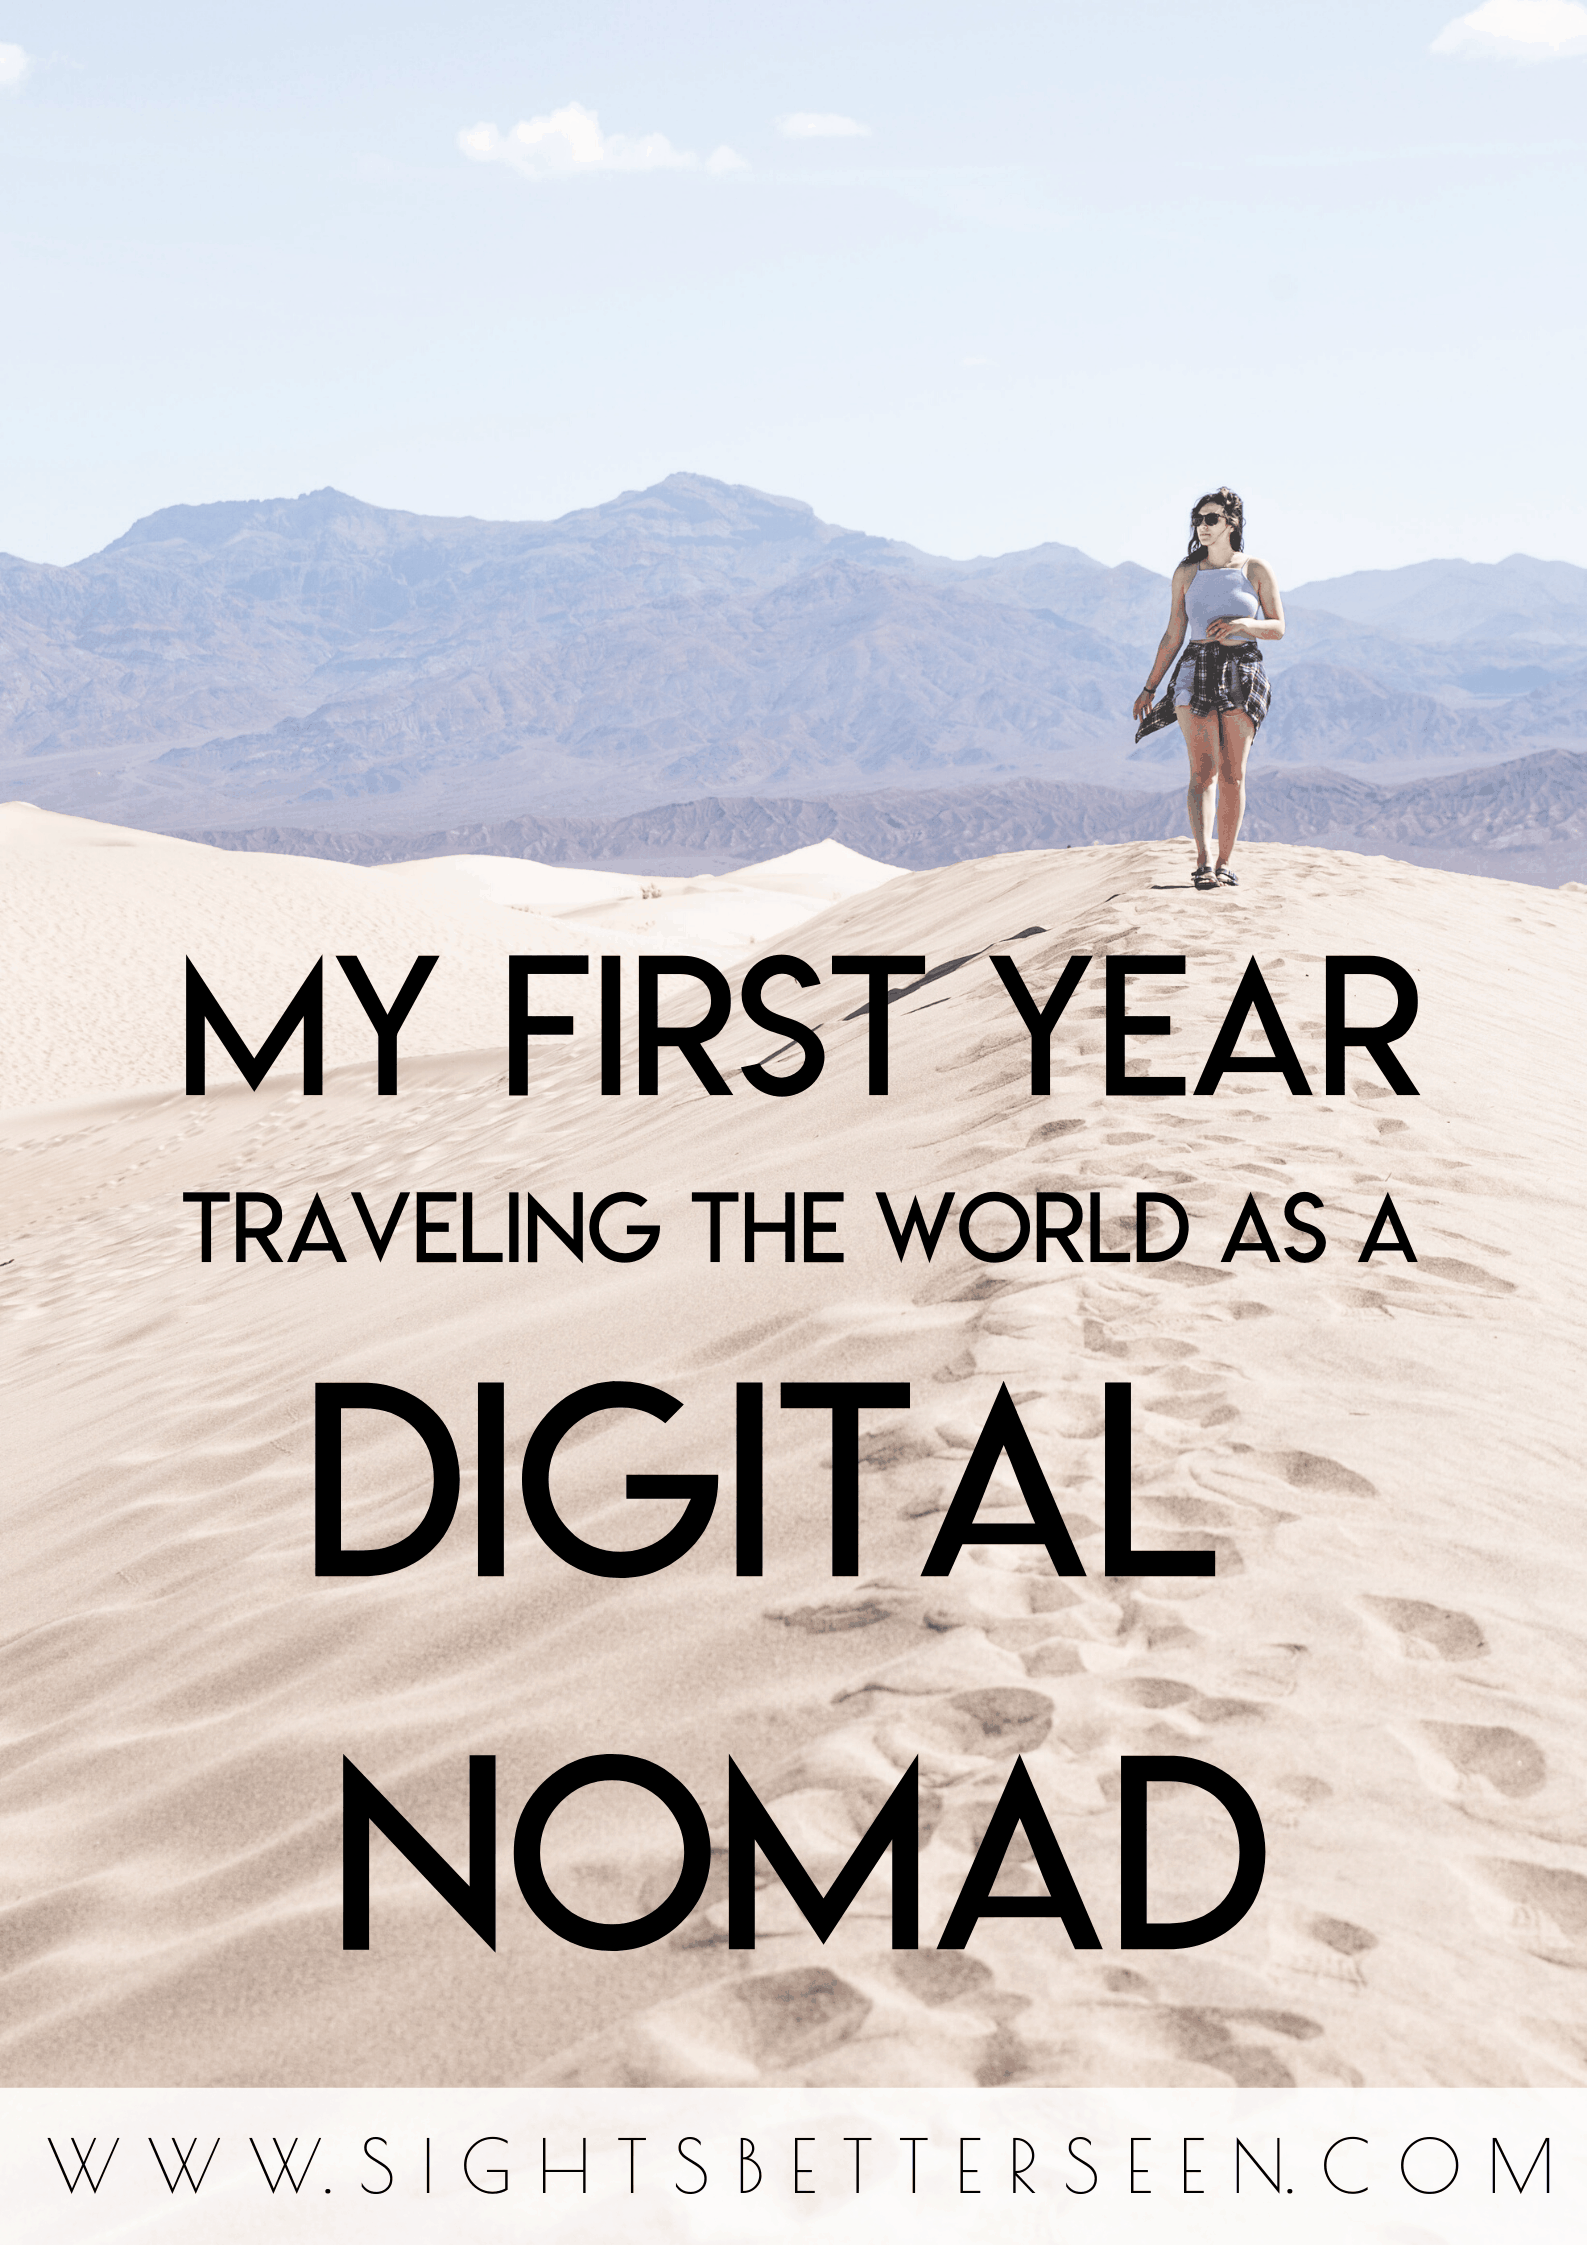 My first year as a digital nomad! Here's what it was like becoming a digital nomad, and how I navigate digital nomad life.